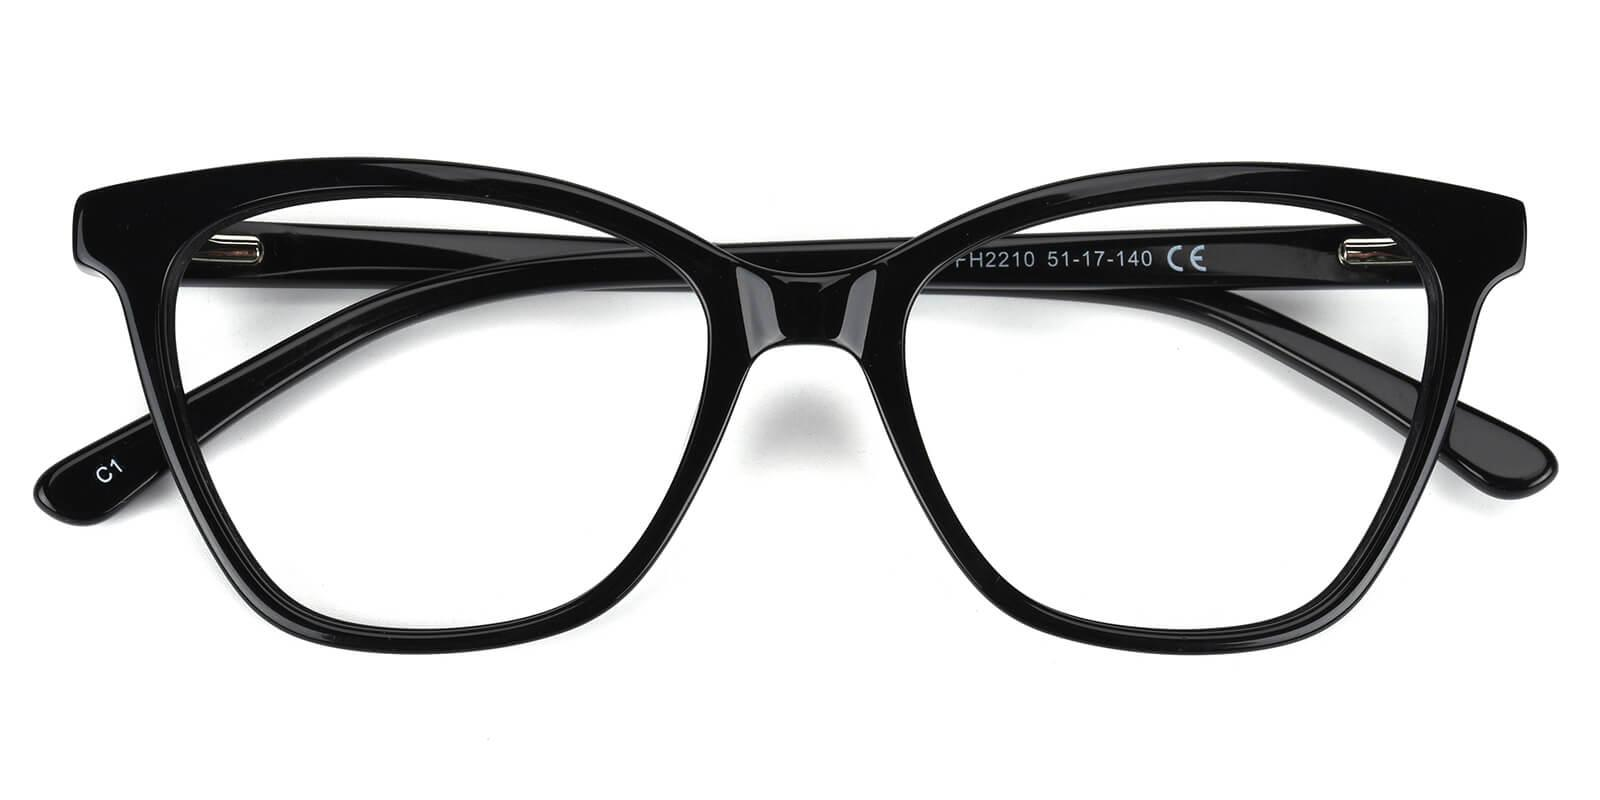 Castely-Black-Cat-Acetate-Eyeglasses-detail